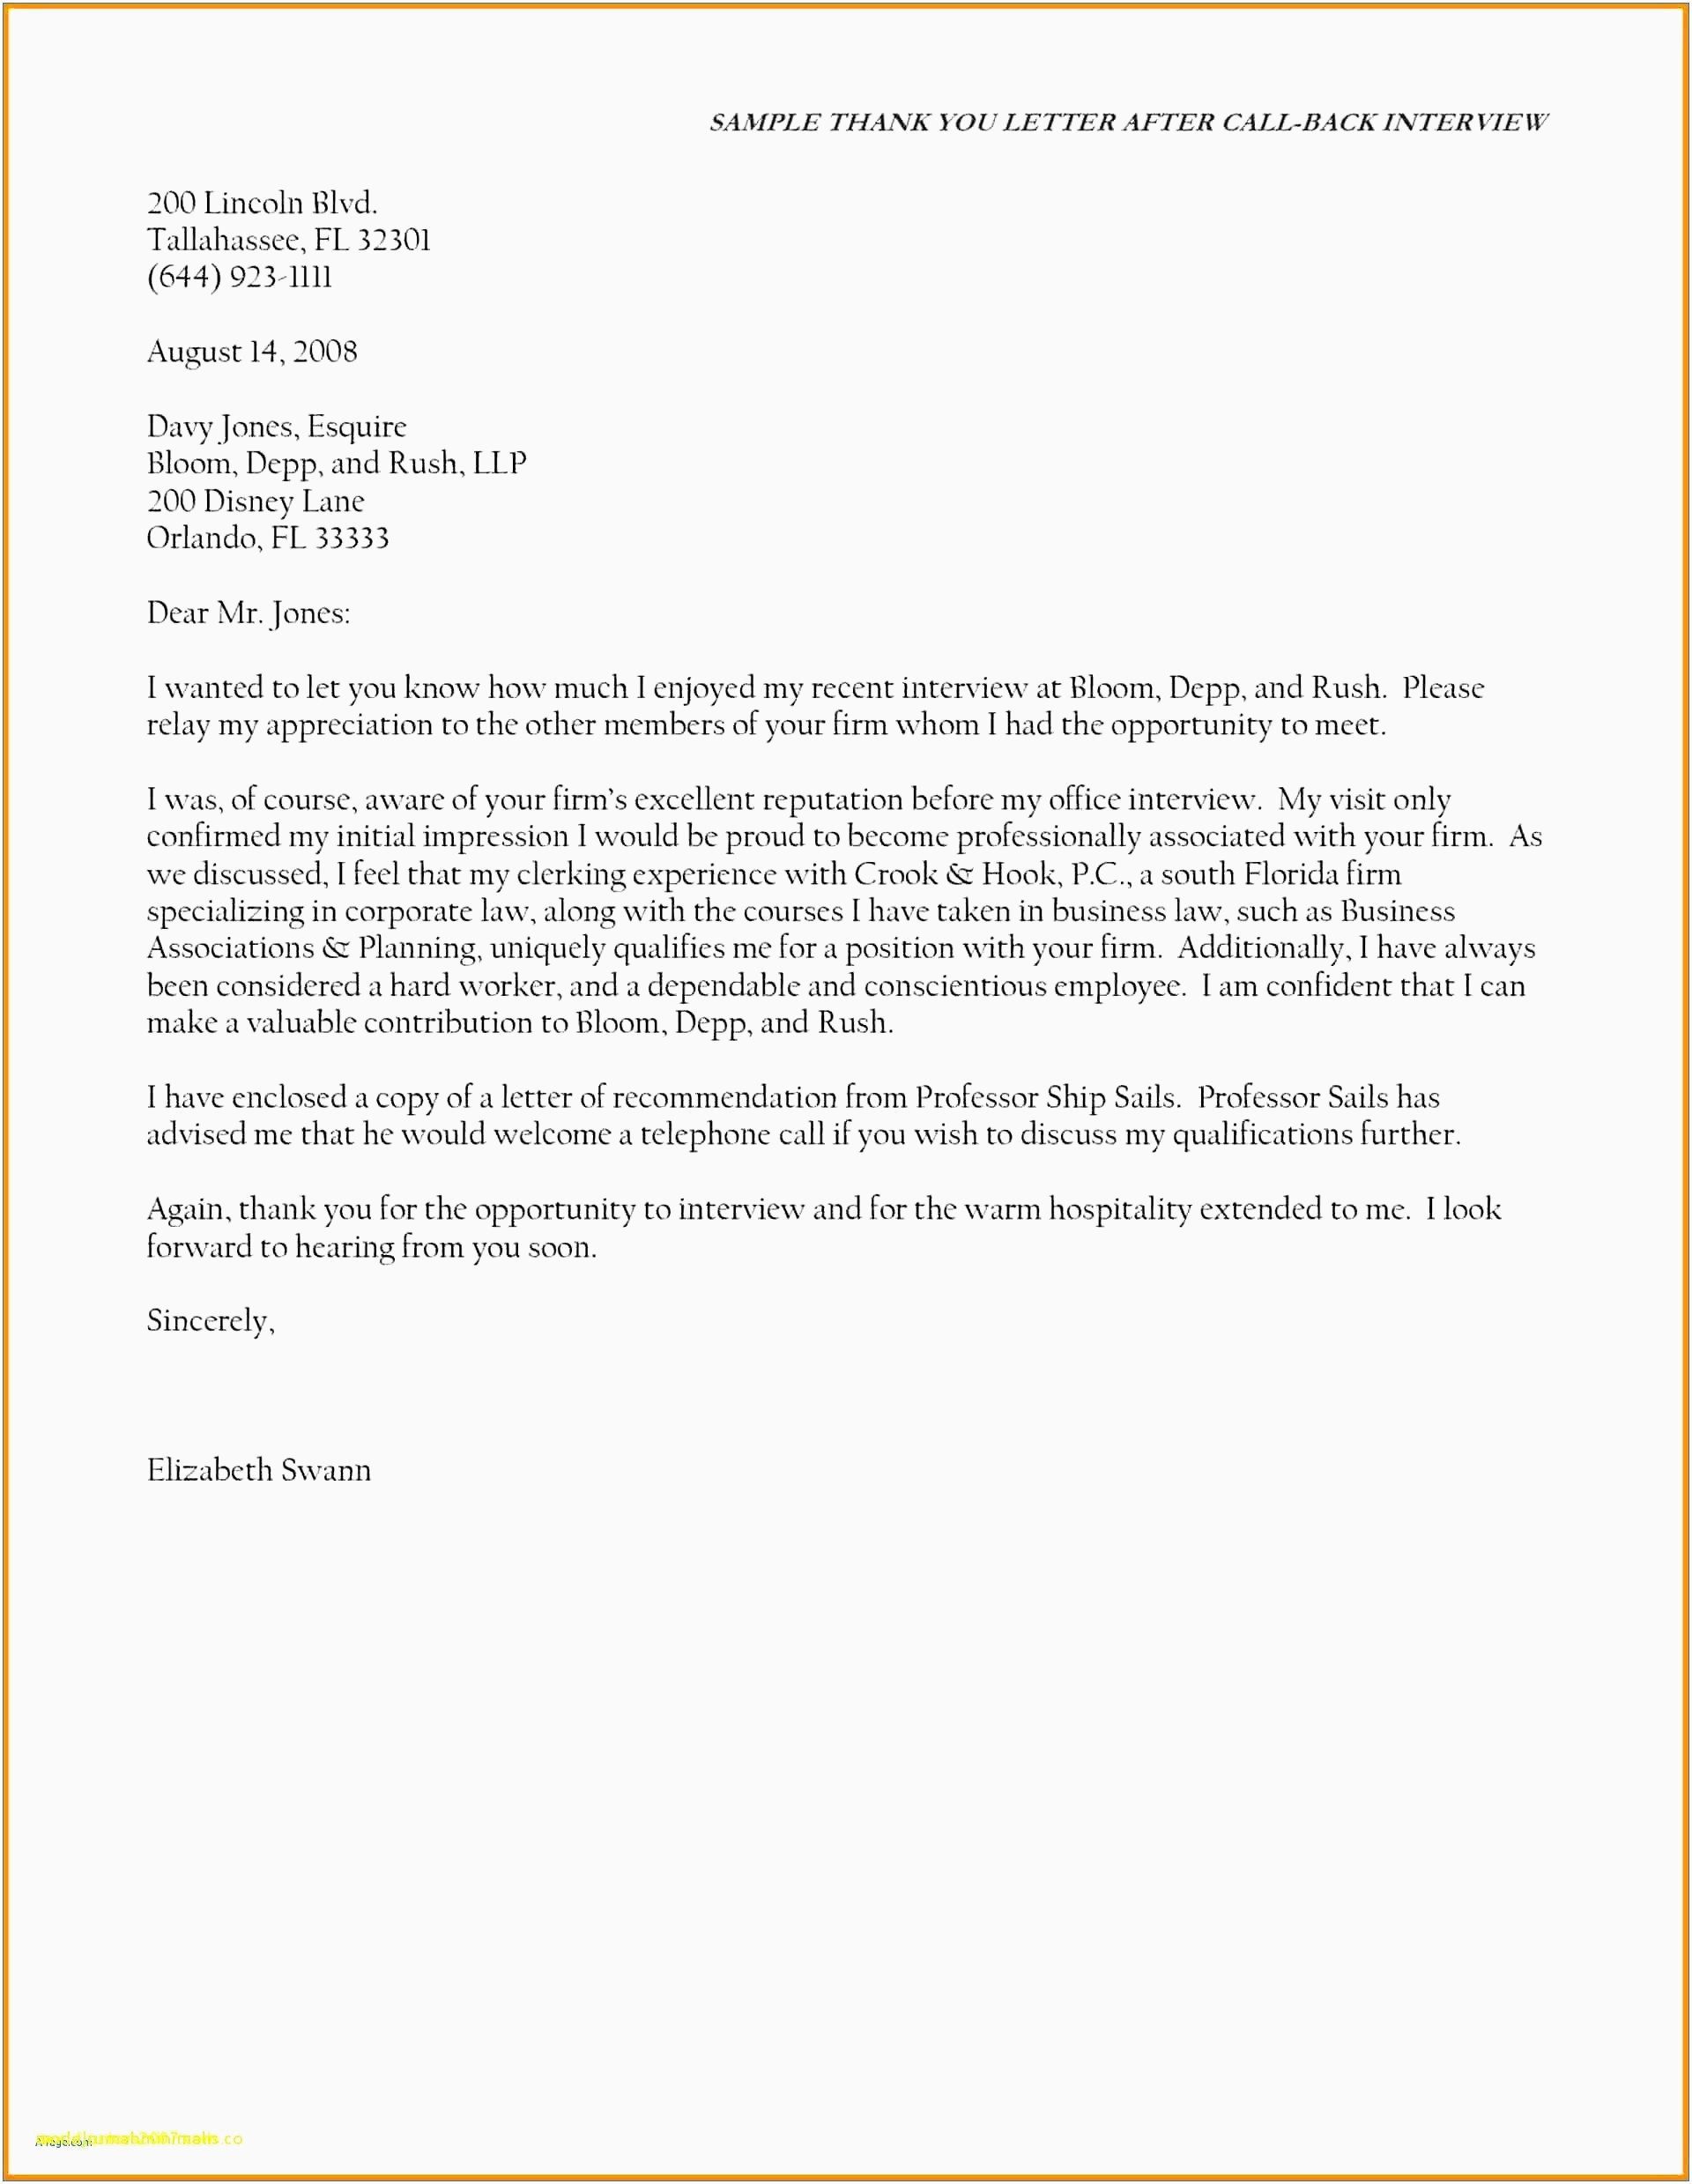 Sick Email Template Inspirational Html Email Template